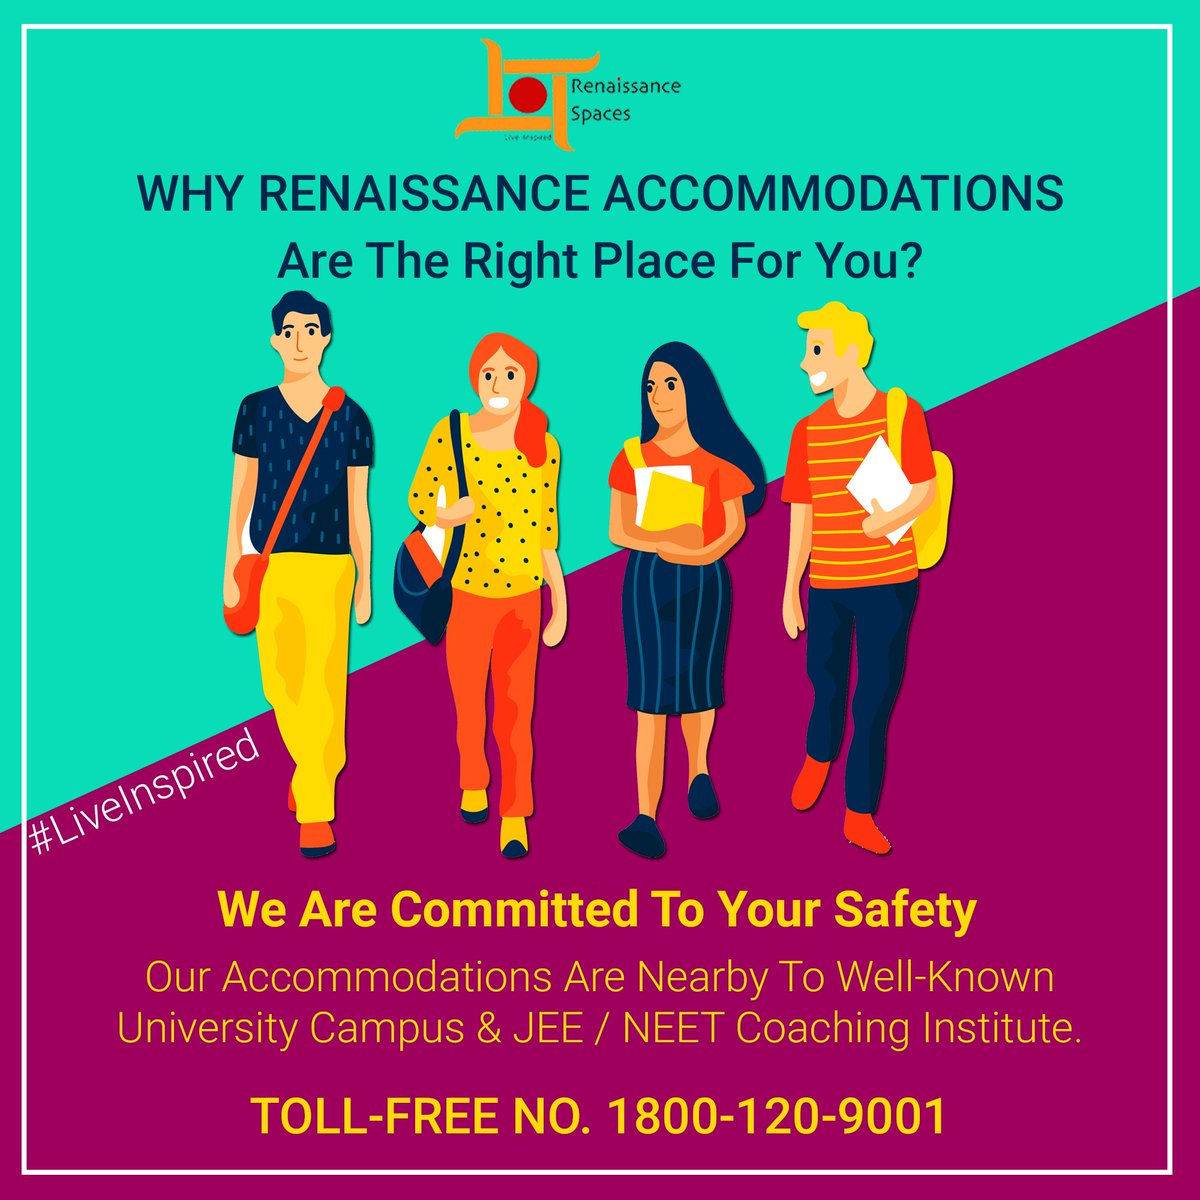 Why Renaissance accommodations are the right place for you? Our Accommodations Are Nearby To University Campus & Well-known #JEE / #NEET Coaching Institute. Call: 1800-120-900 Visit: http://www.renaissance-spaces.in #JustFeelIt #DelhiUniversity #DU #NorthCampus #SRCC  #Allen #Resonance